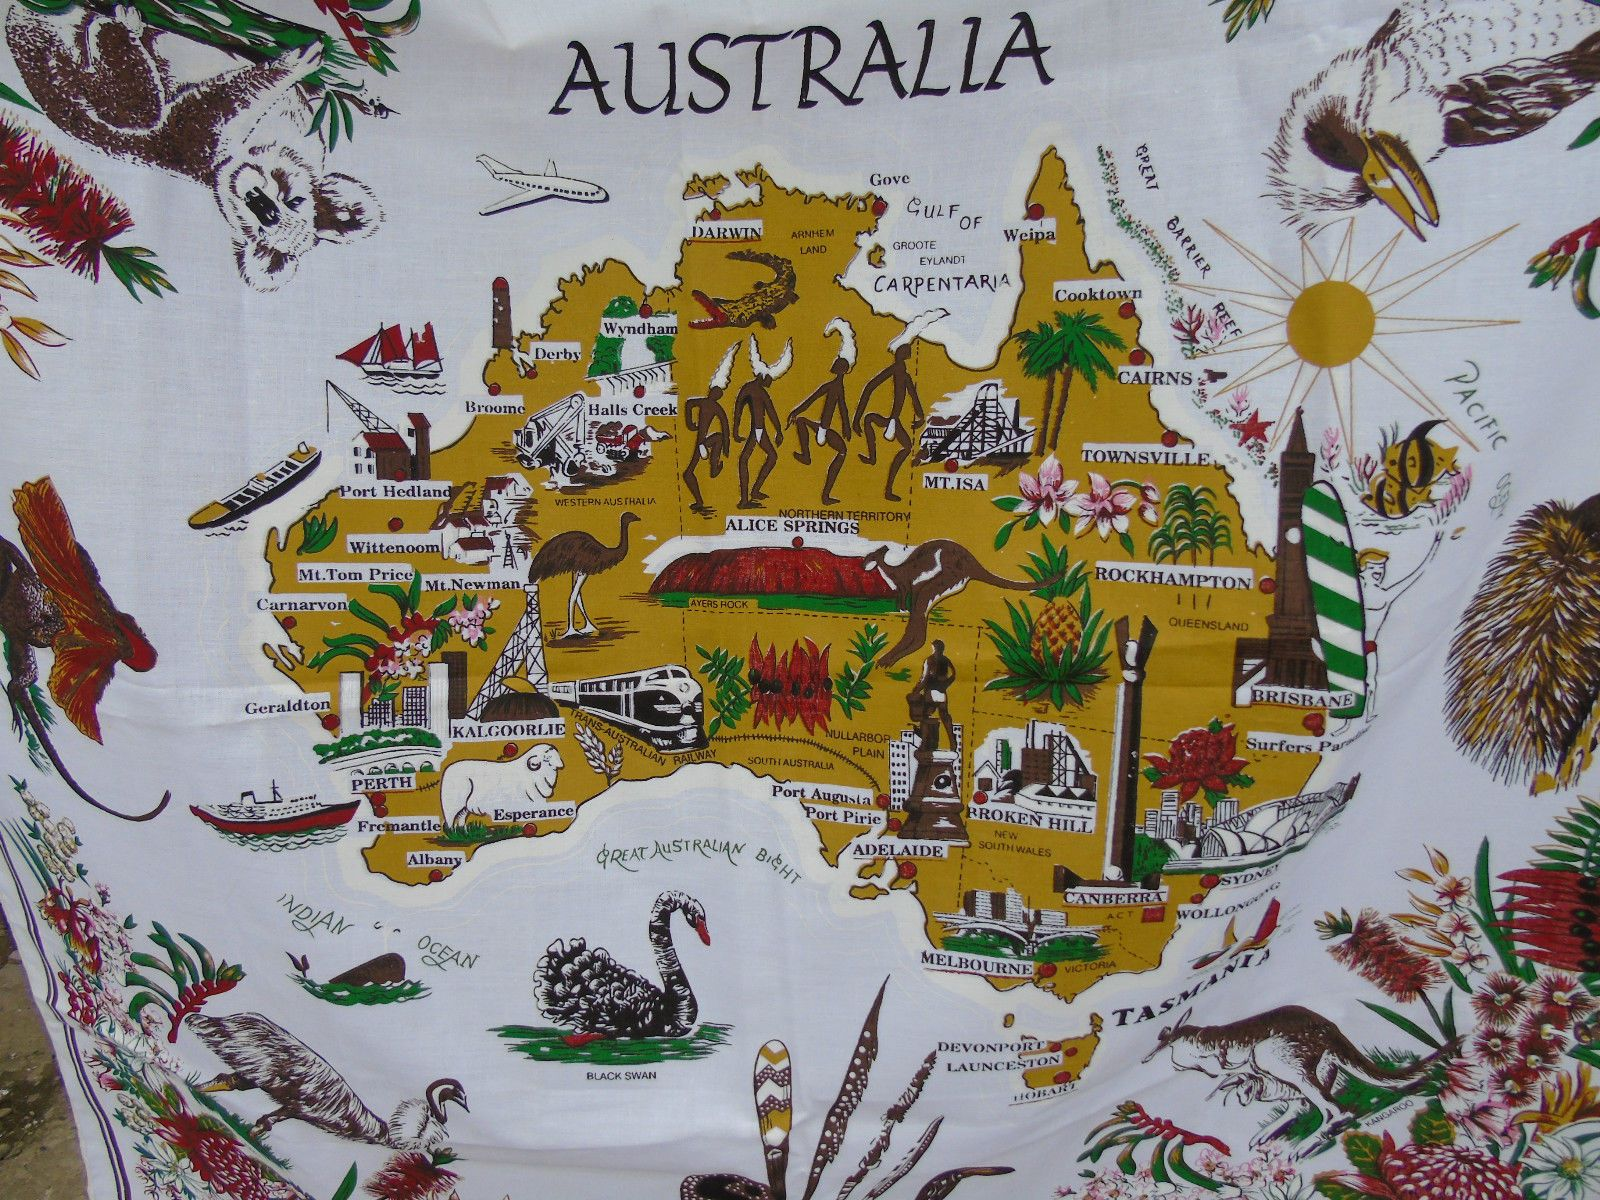 Souvenir australia tablecloth with map animals and plants design souvenir australia tablecloth with map animals and plants design ebay gumiabroncs Choice Image